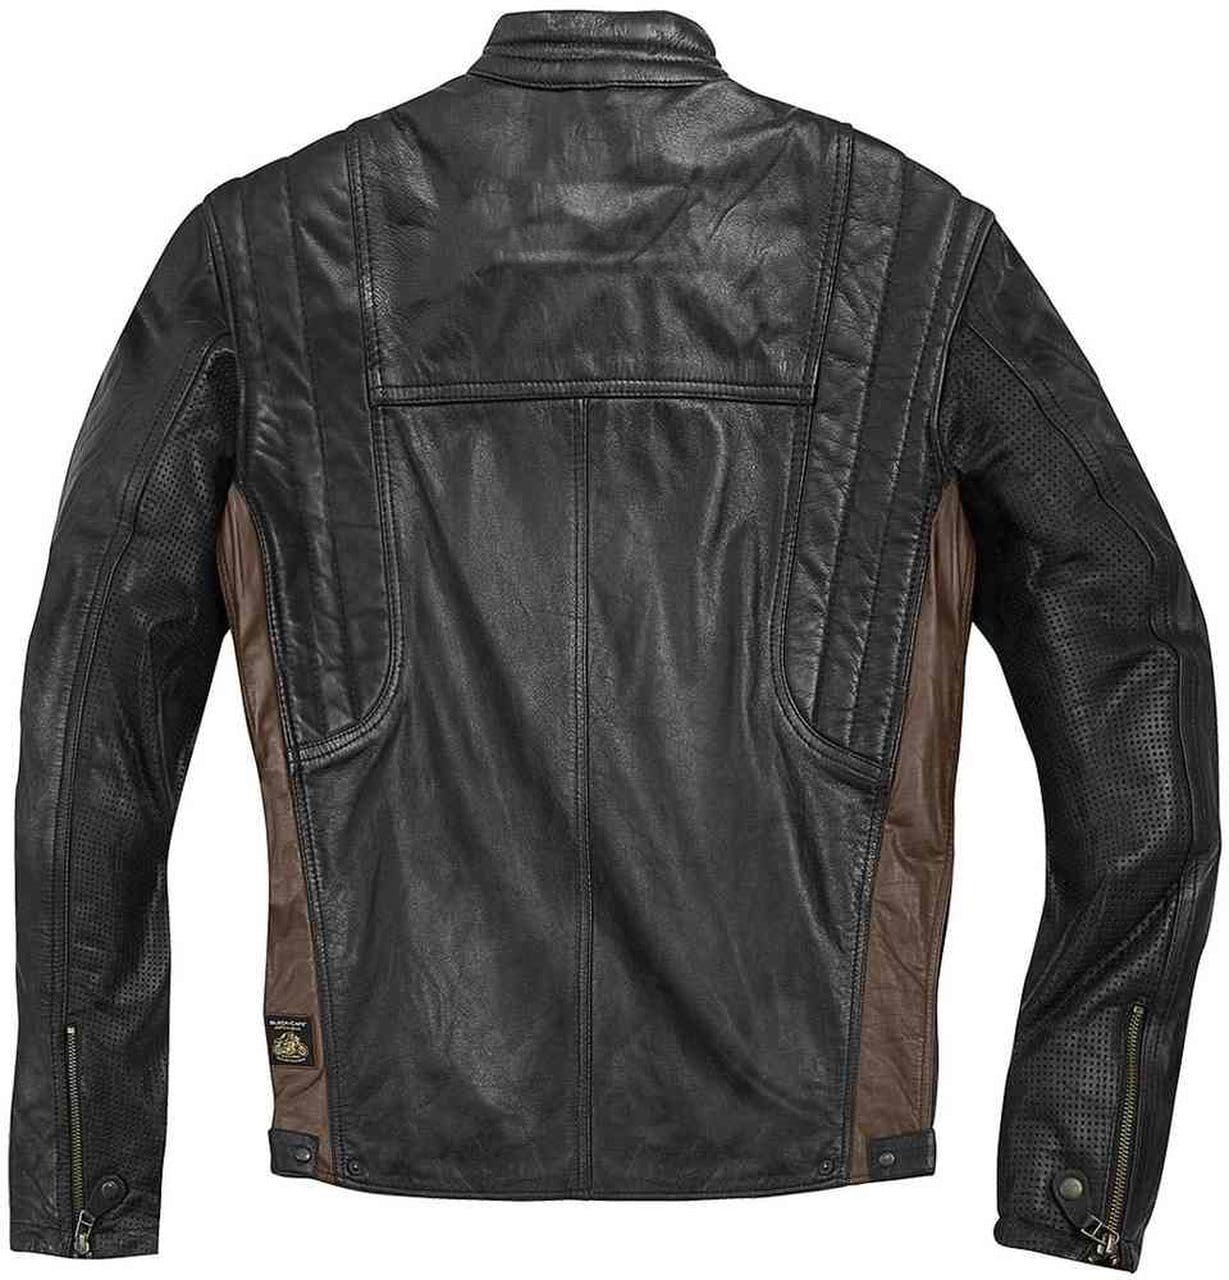 Smart And Stylish Motocycle Leather Jacket For Men In Brown